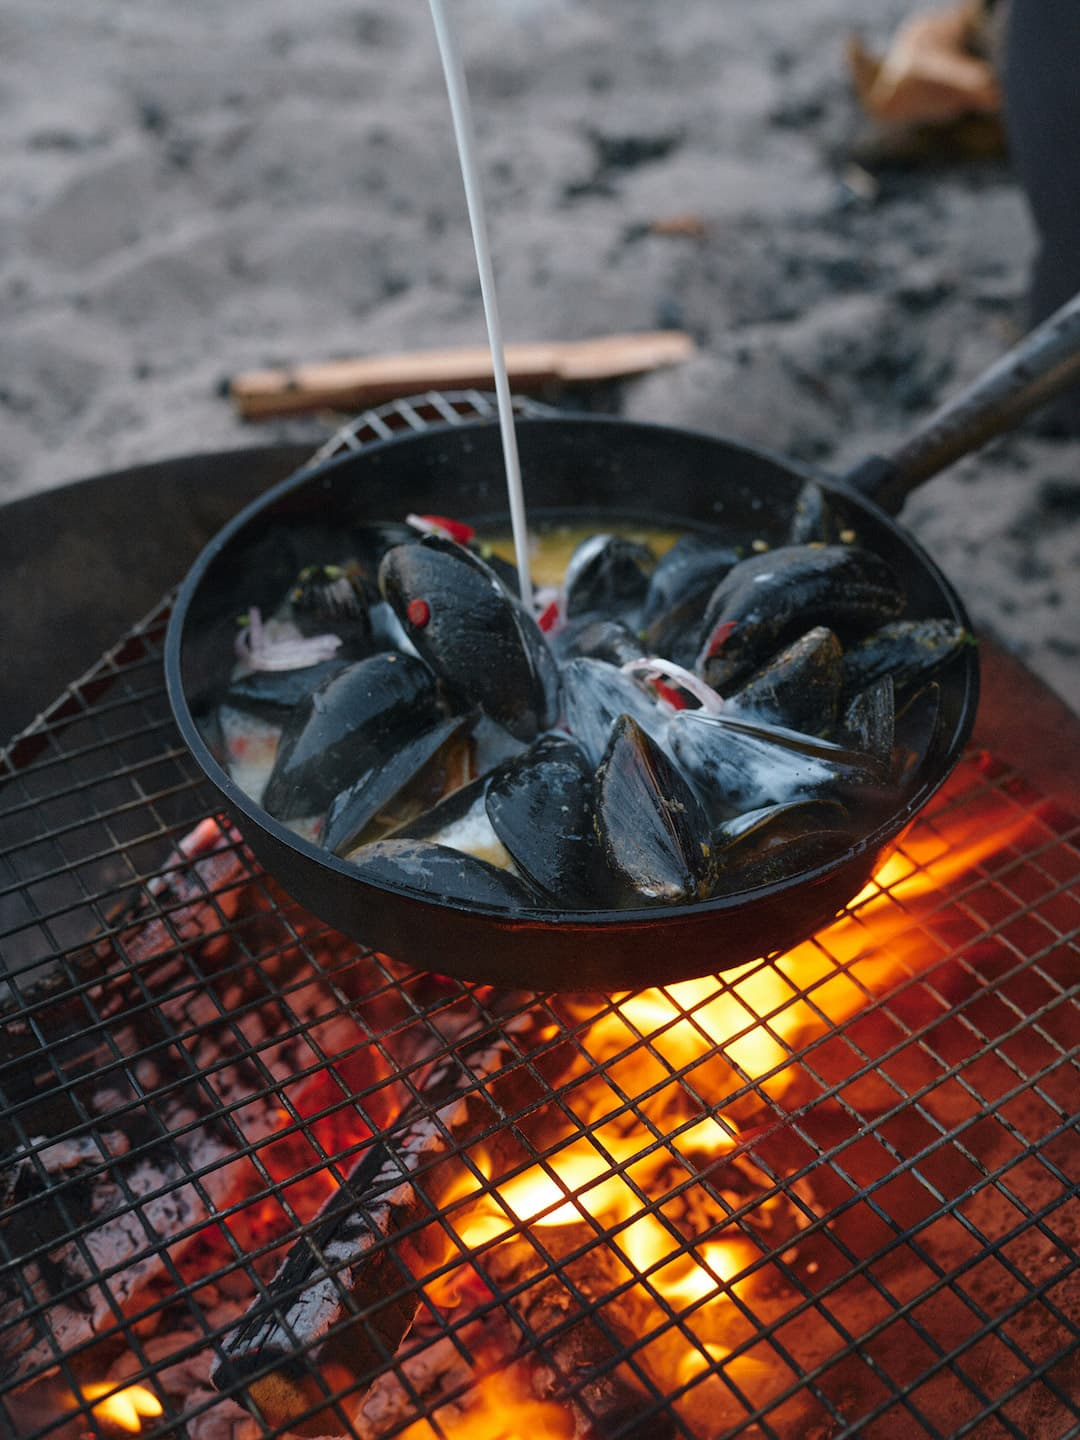 Mussels being cooked in a pan on a fireplace